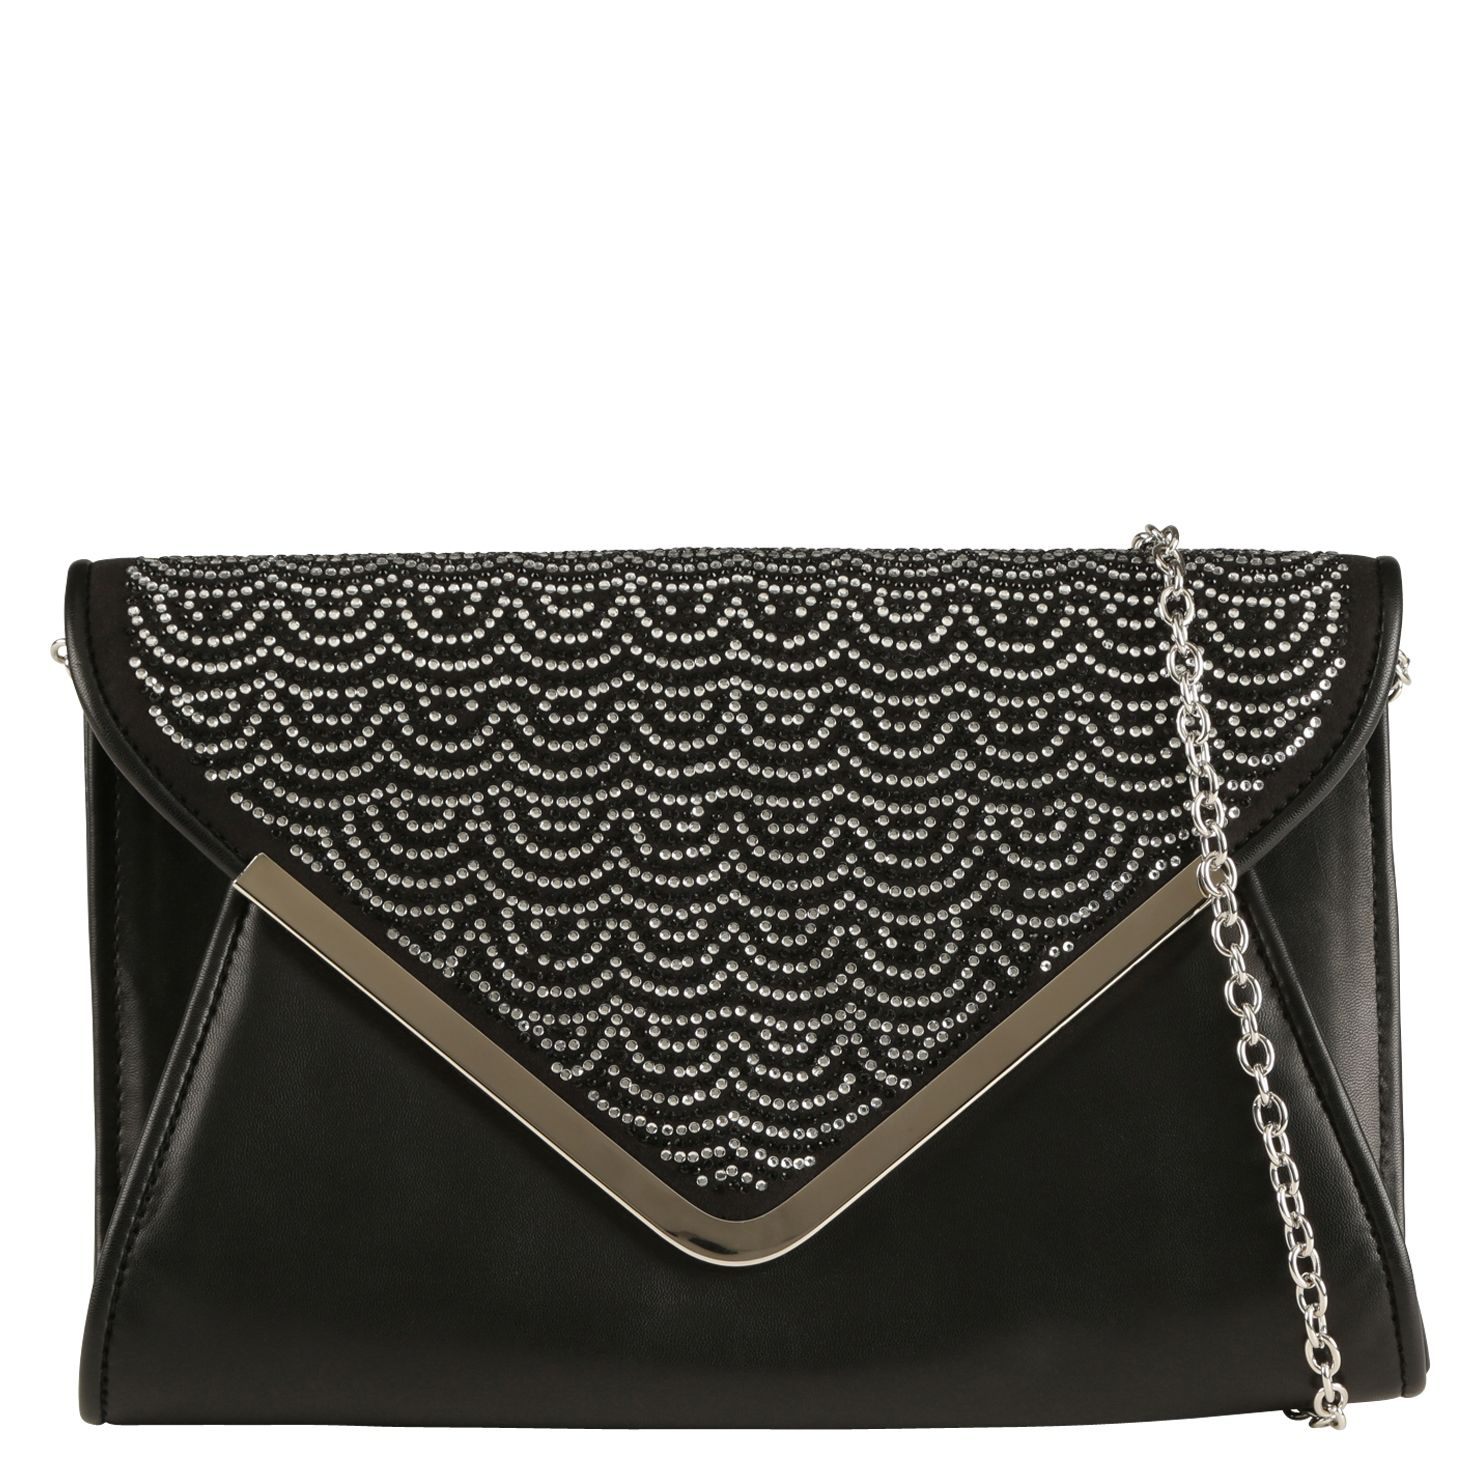 Performer enveloppe clutch bag